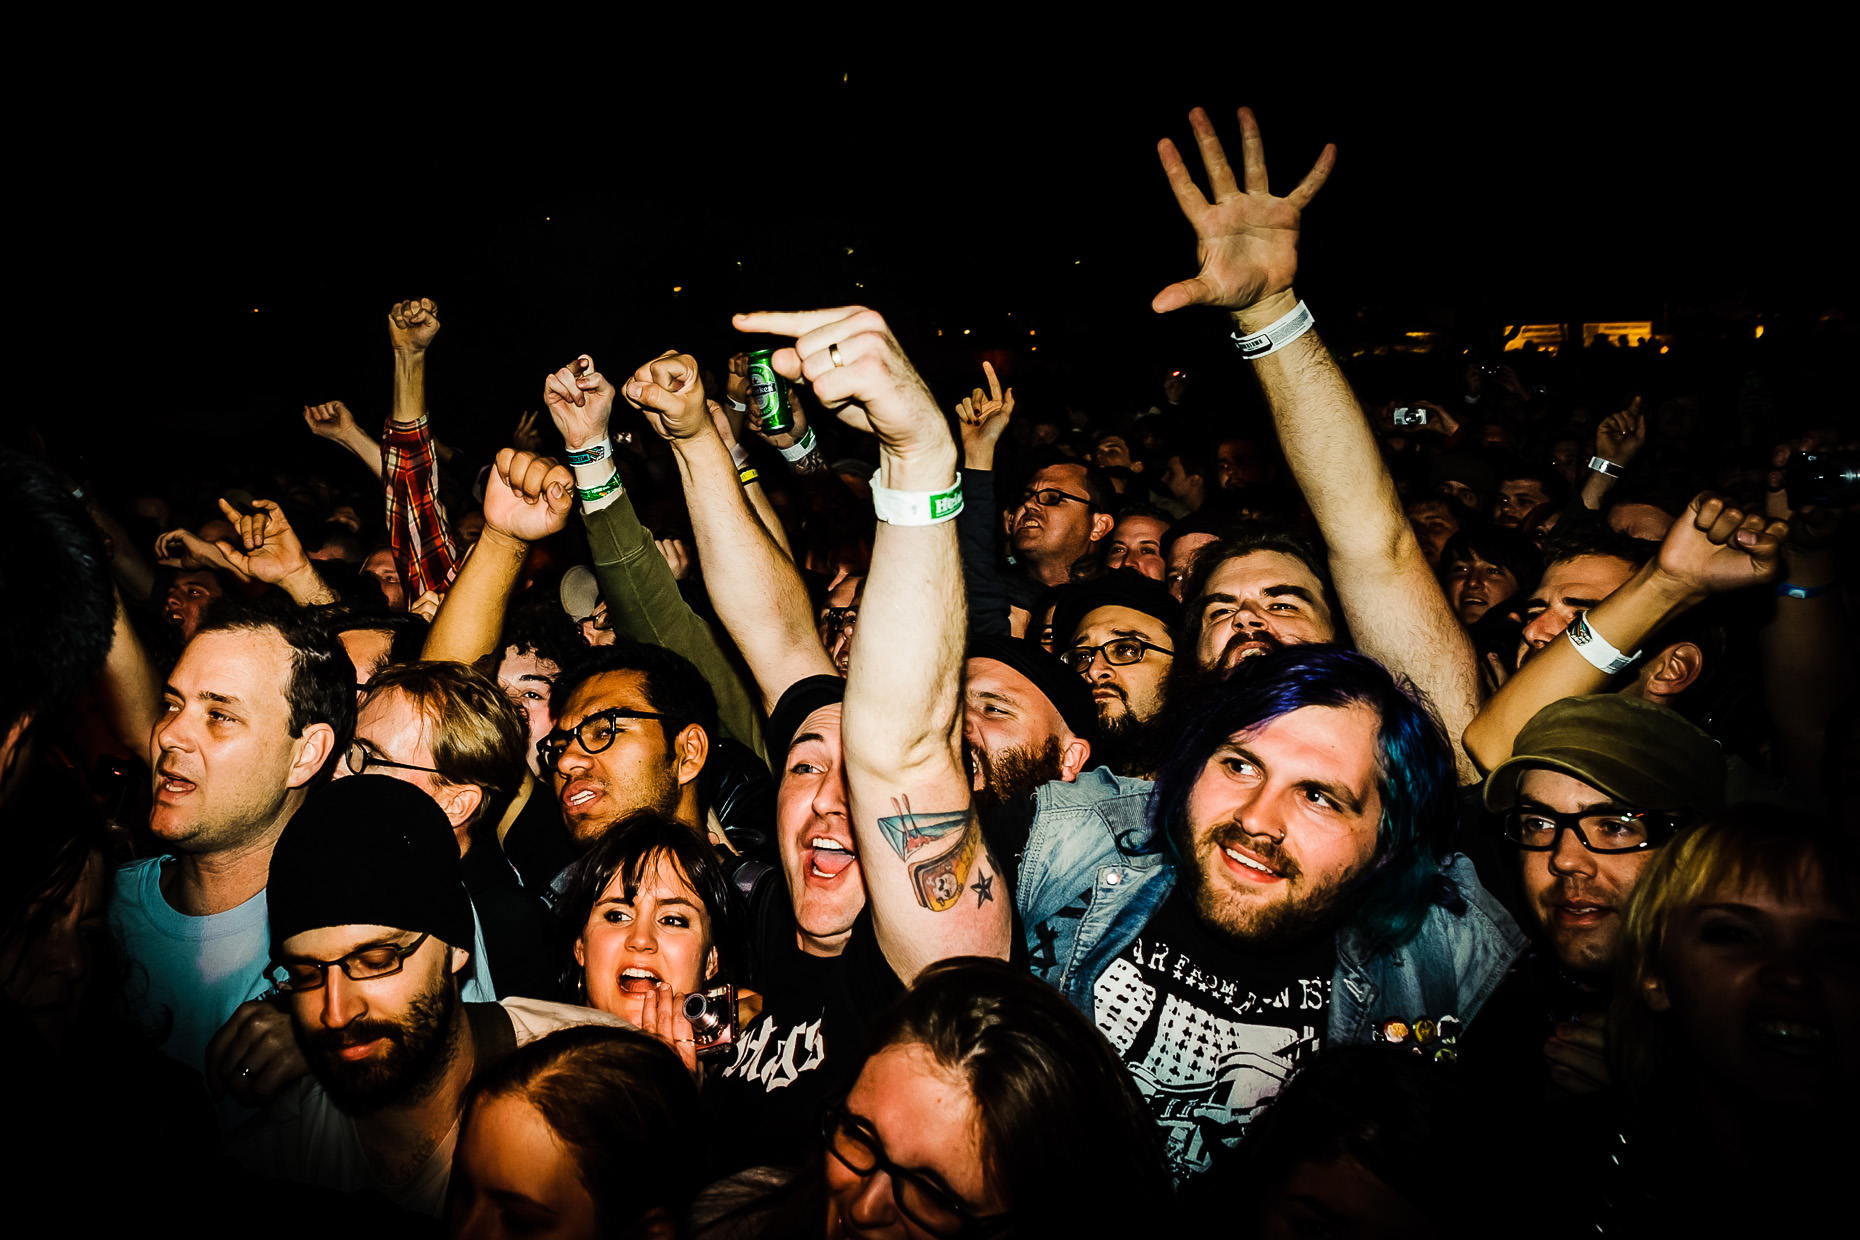 The- Descendents-Live-Crowd-Austin-Texas-Photographer.jpg